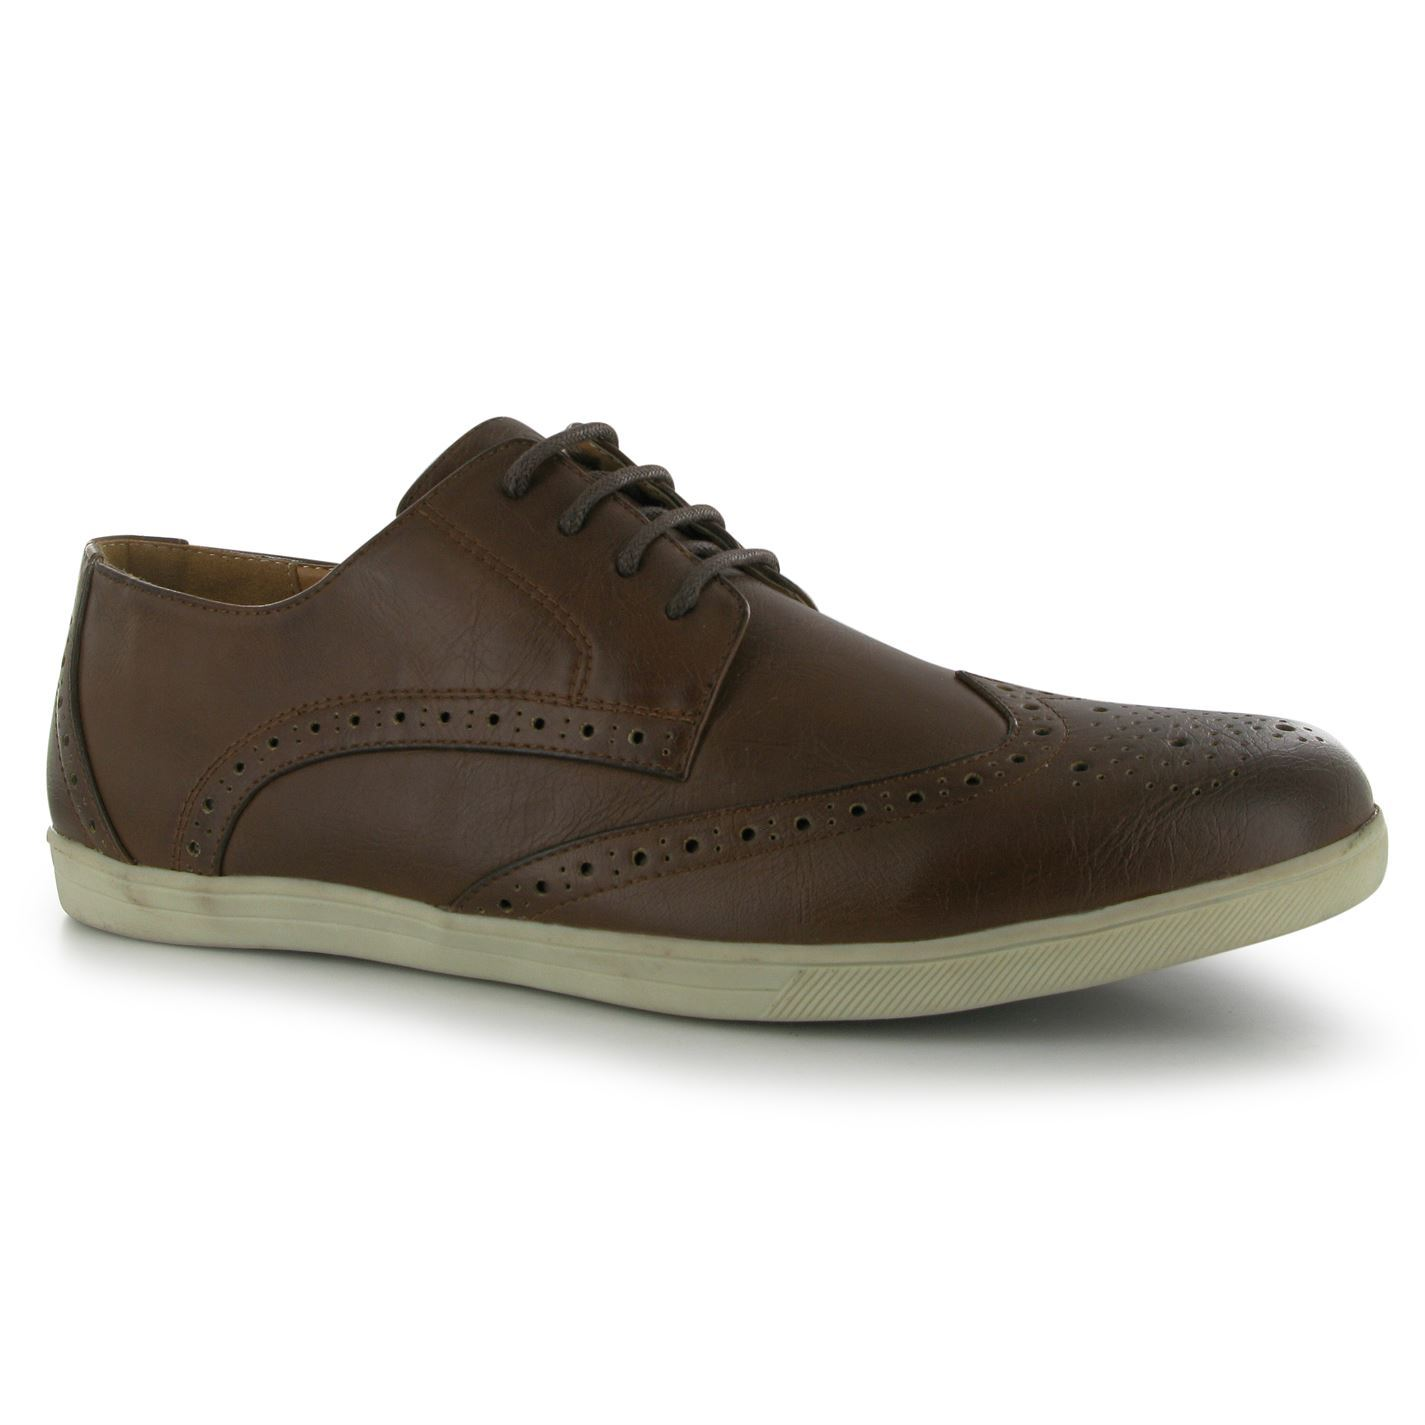 Lee Cooper Mens C Beyond Brogue Shoes Laced Casual ...